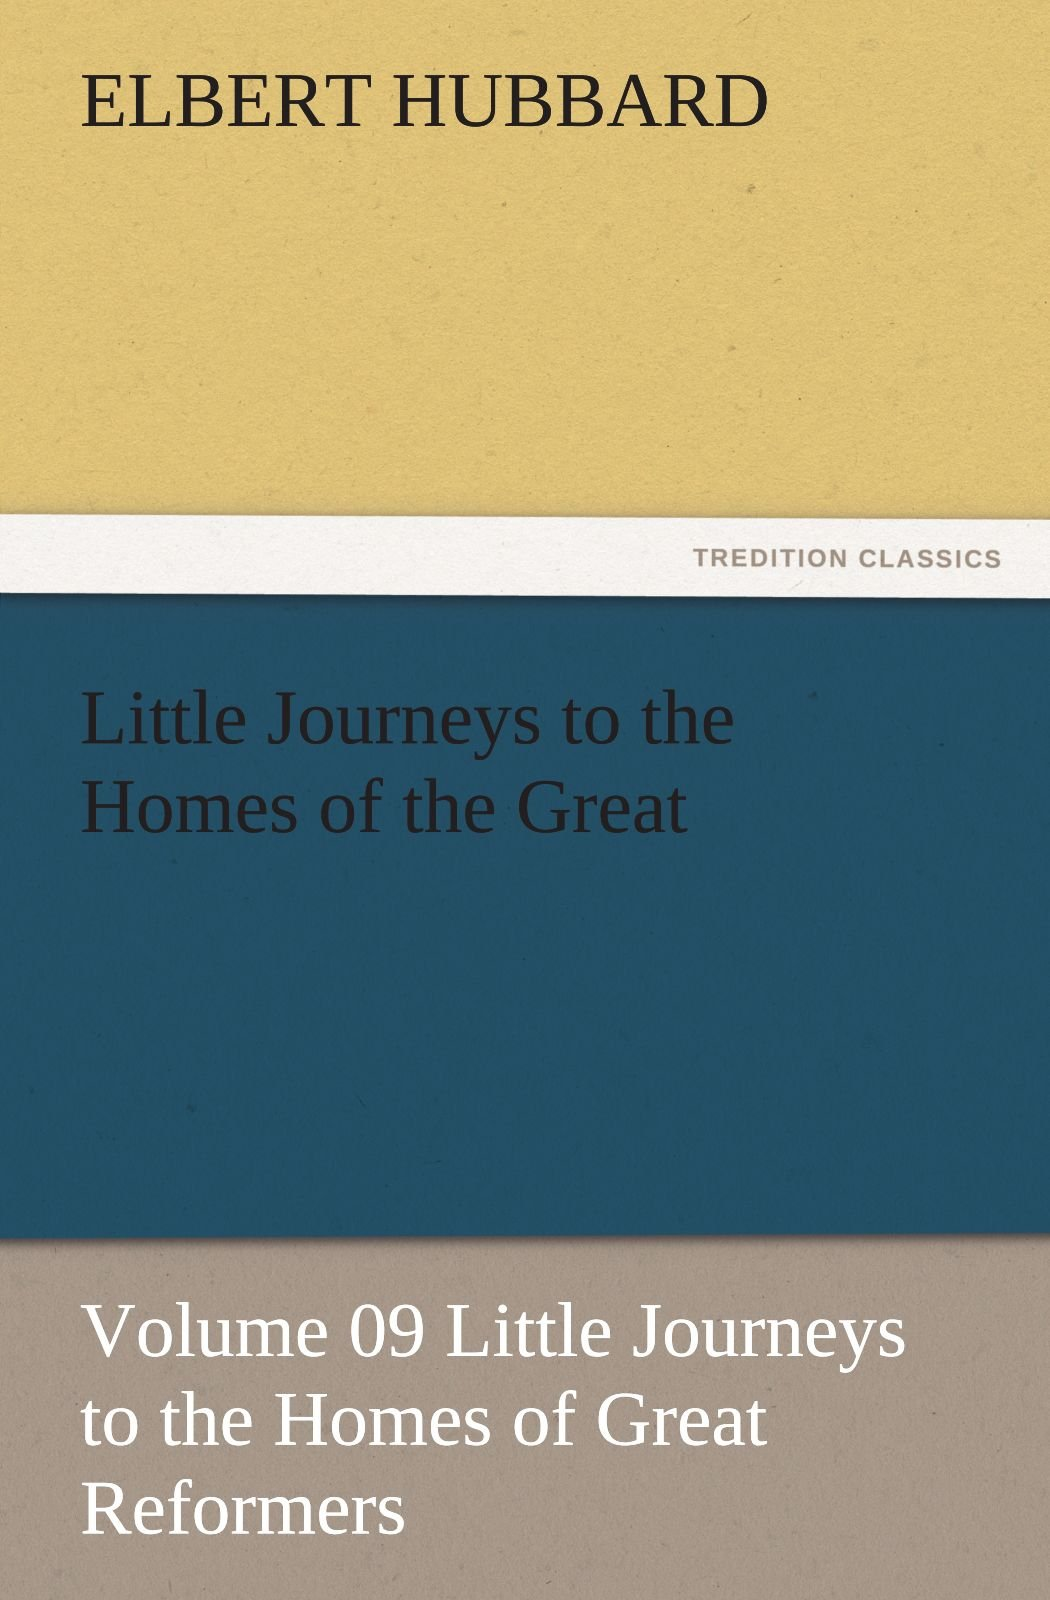 Little Journeys to the Homes of the Great - Volume 09 Little Journeys to the Homes of Great Reformers (TREDITION CLASSICS) pdf